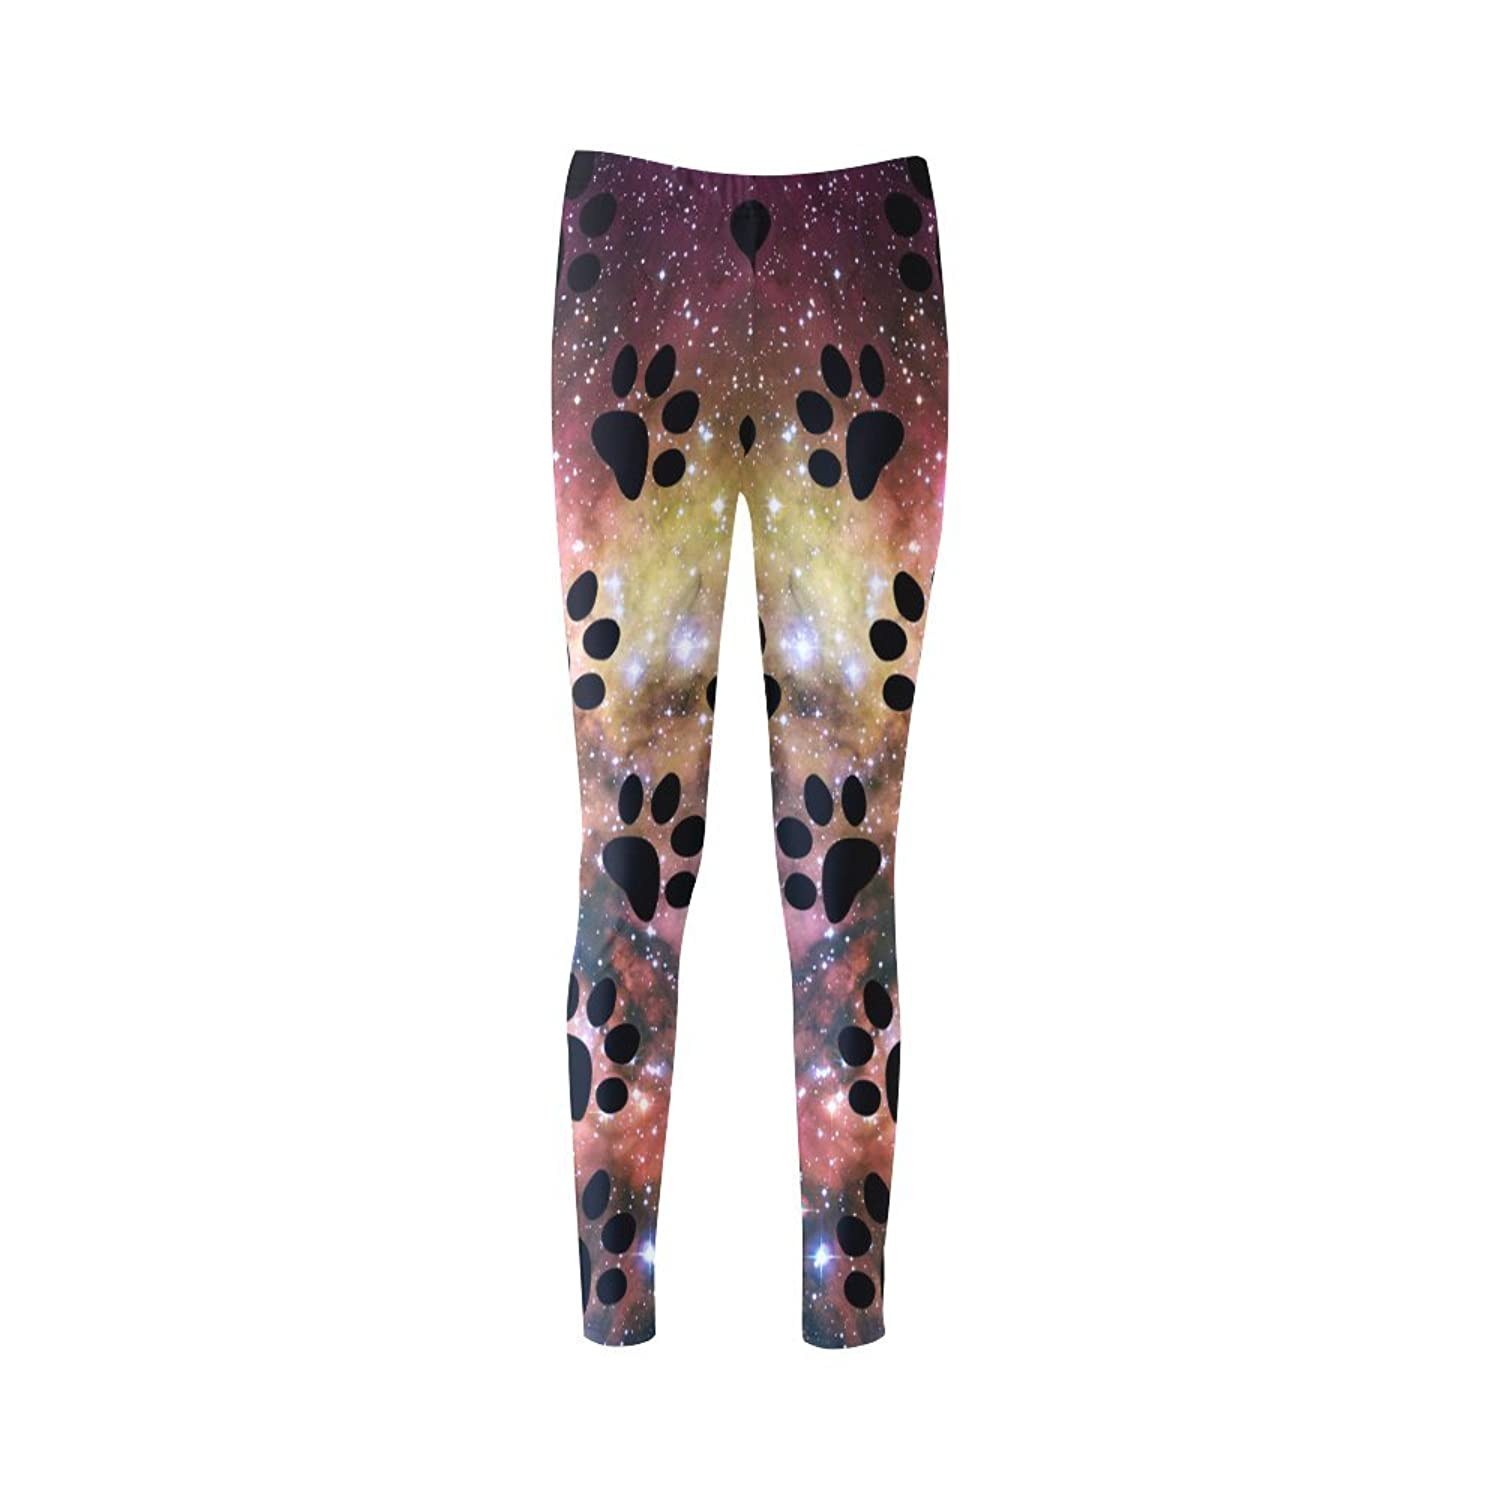 e14e938951068 Type: Polyamide, for Women, All-over Printing 7.27 Oz. Designed for fashion  women, stylish and personalized. Stretchy and tight-fitting style, ...